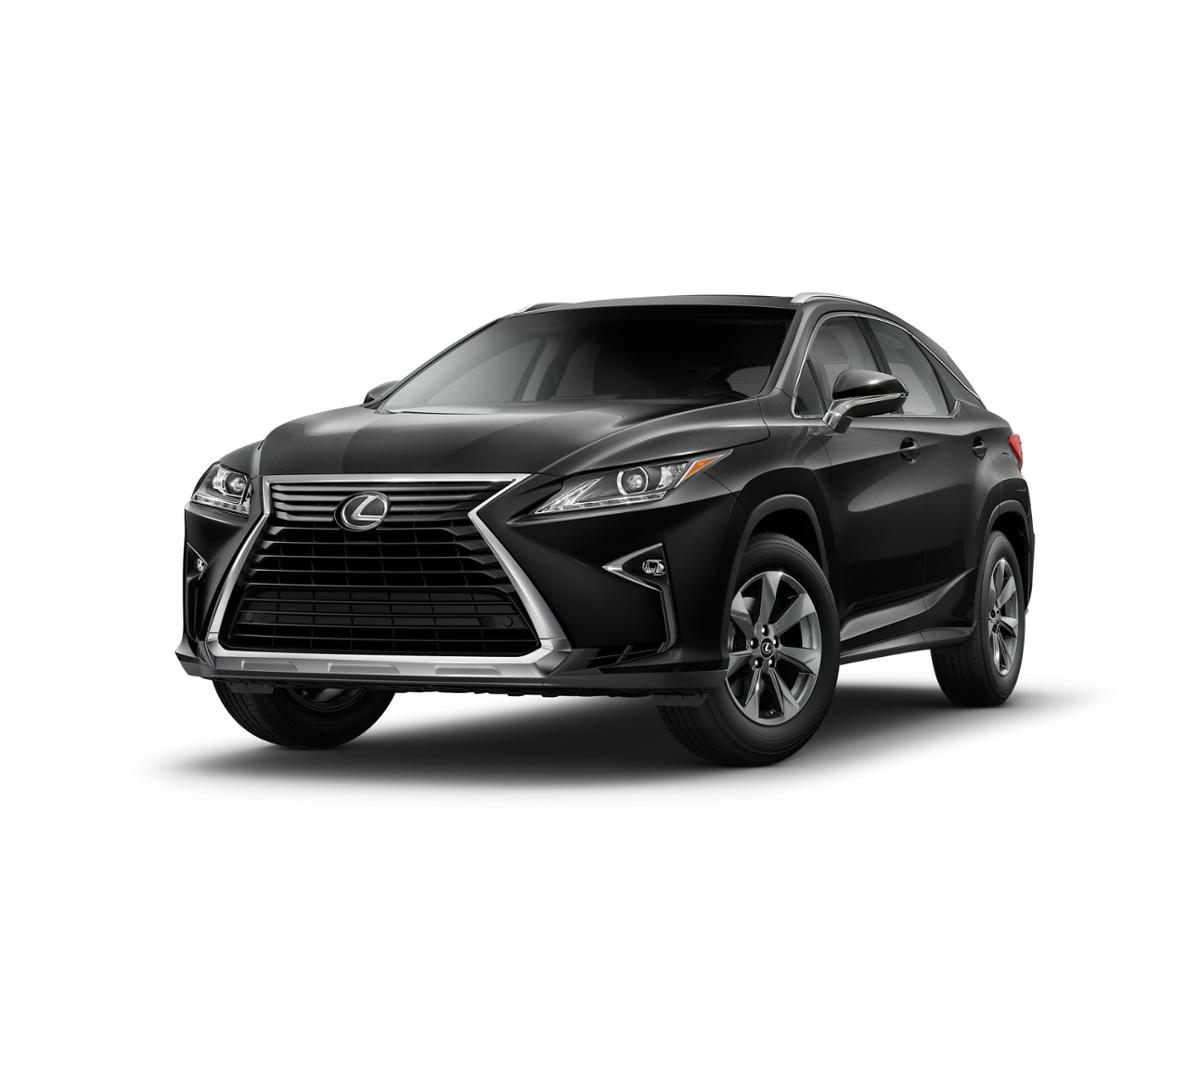 2019 Lexus RX 350 Vehicle Photo in Mission Viejo, CA 92692